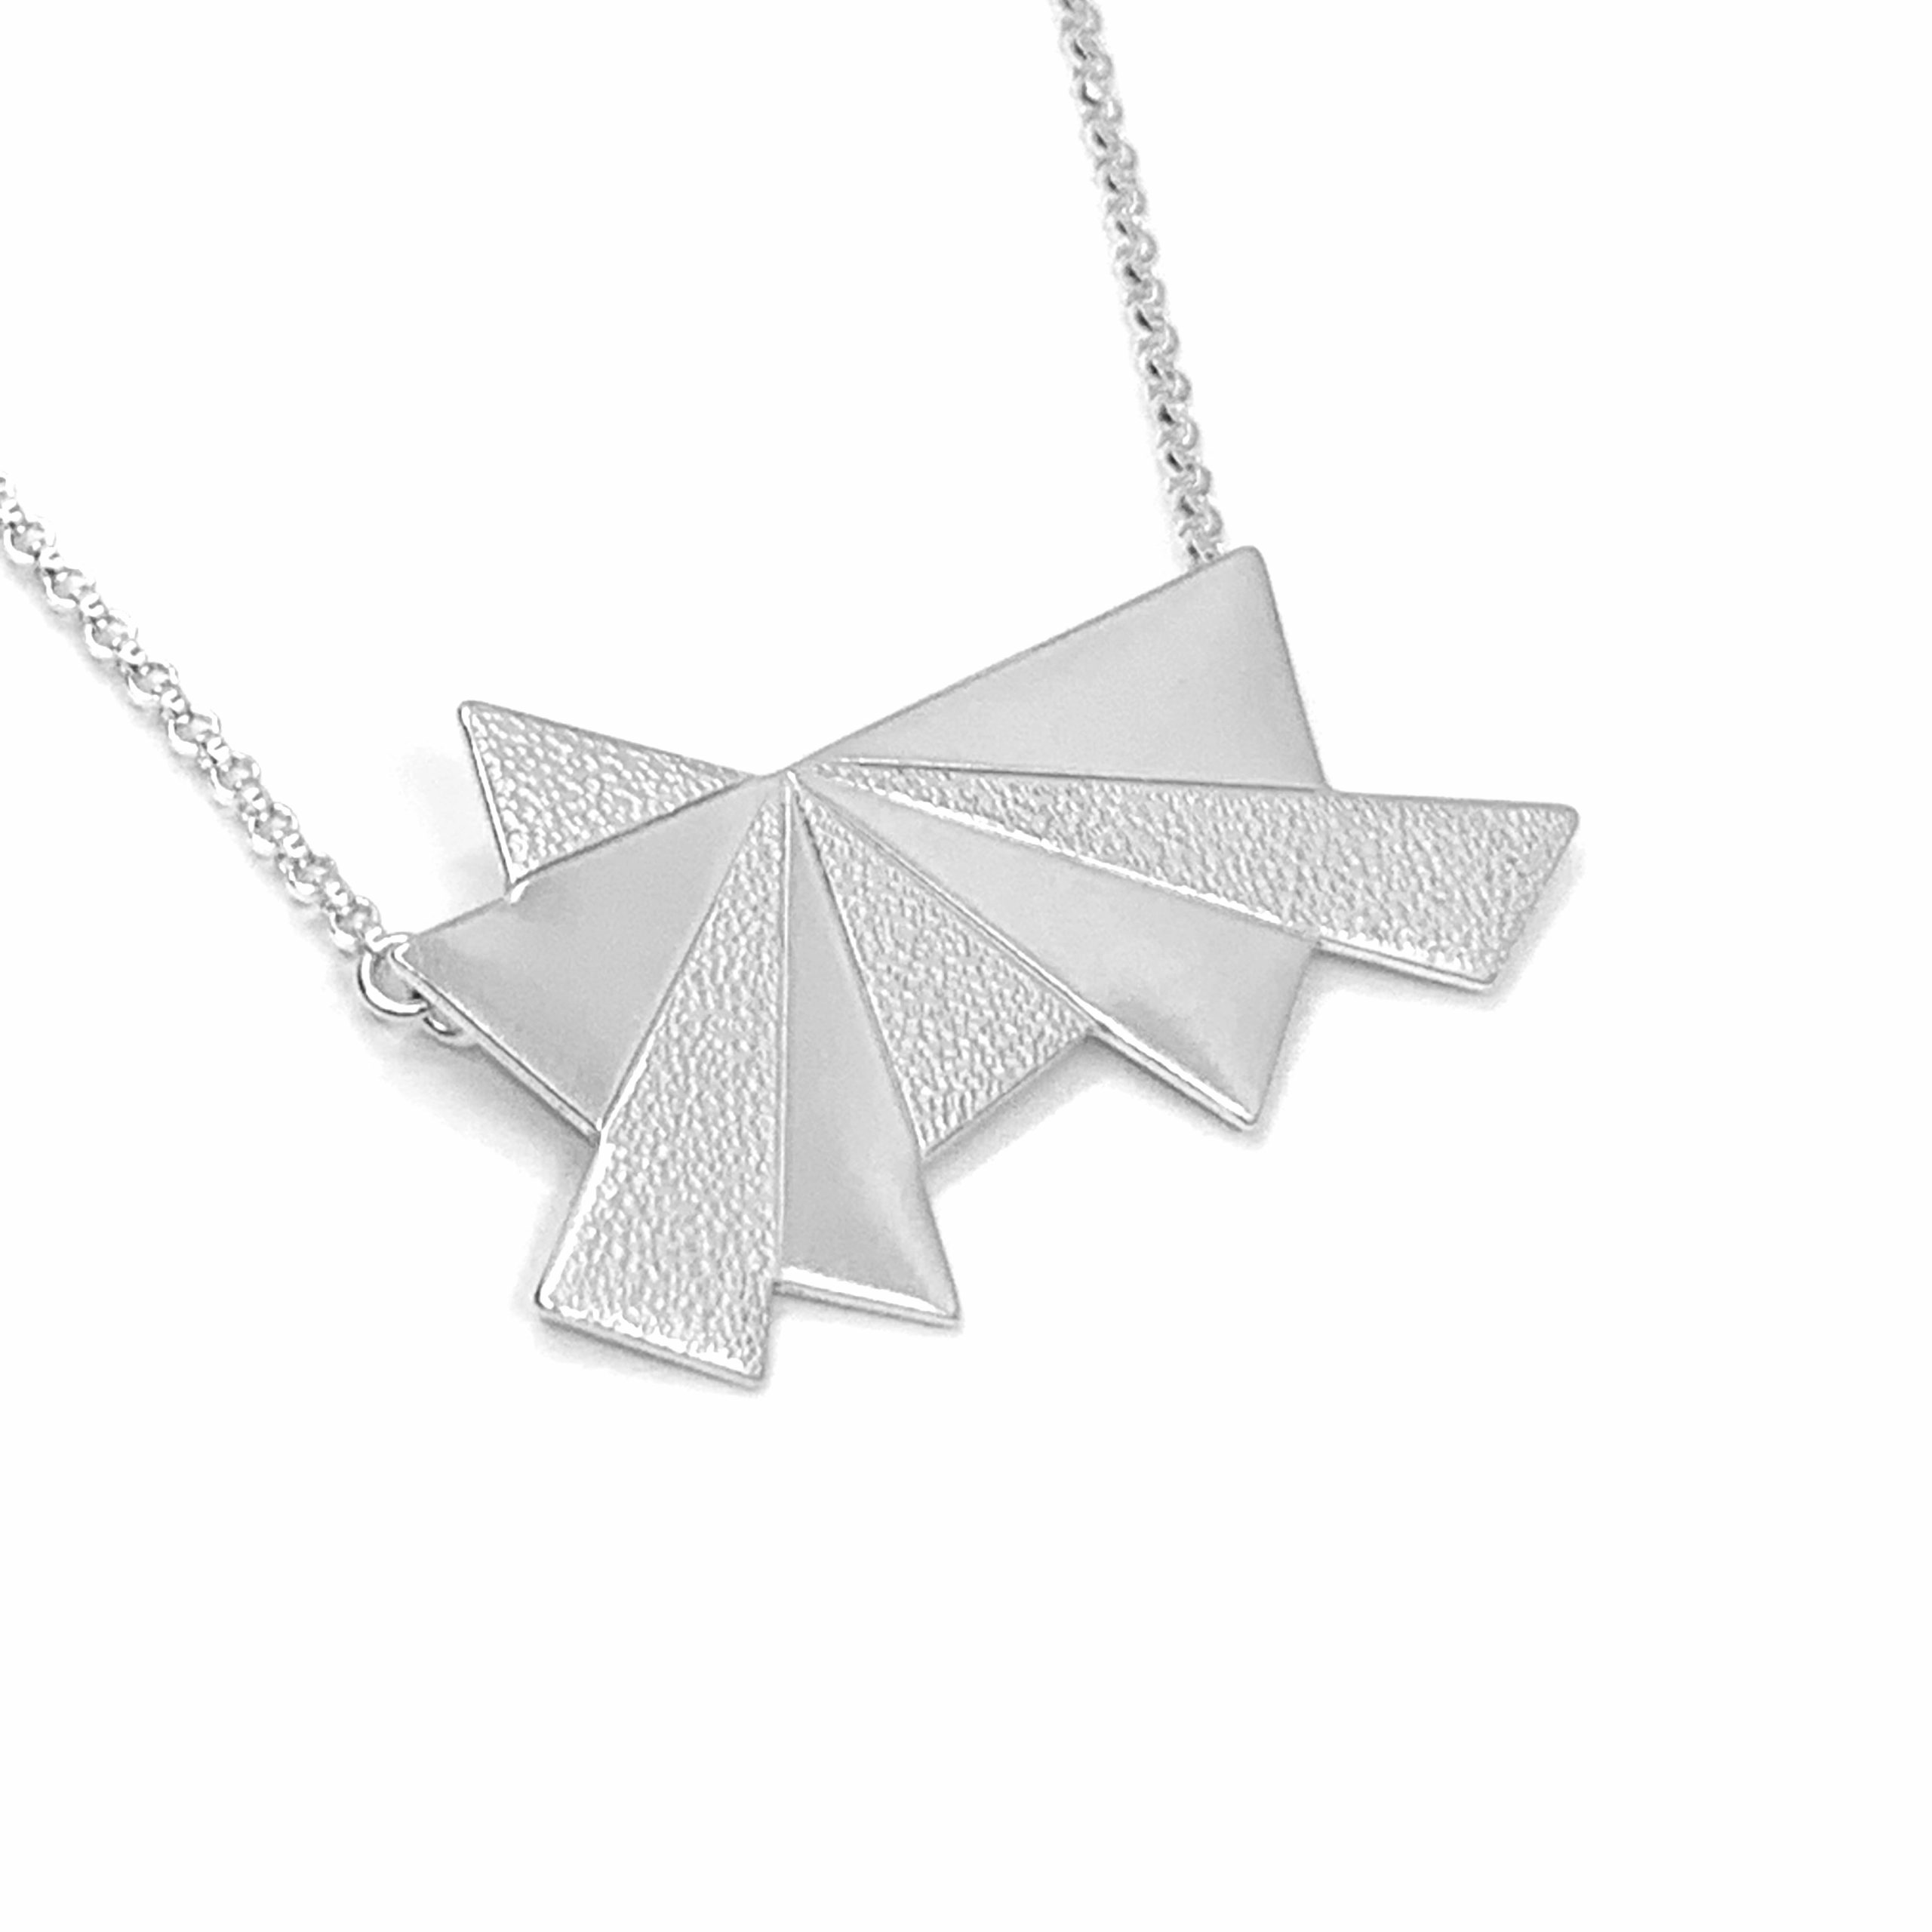 Dawn textured silver necklace